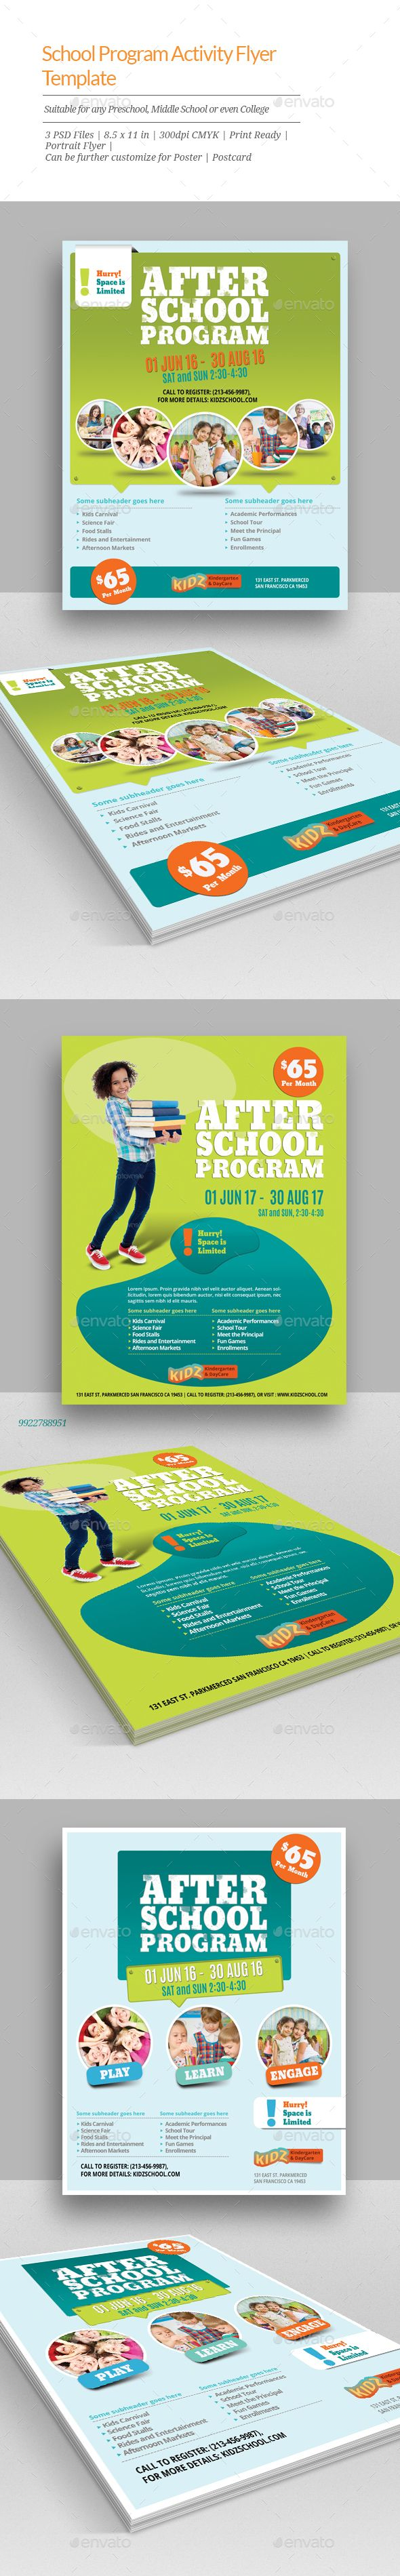 best images about design templates for school 17 best images about design templates for school activities flyer template and back to school